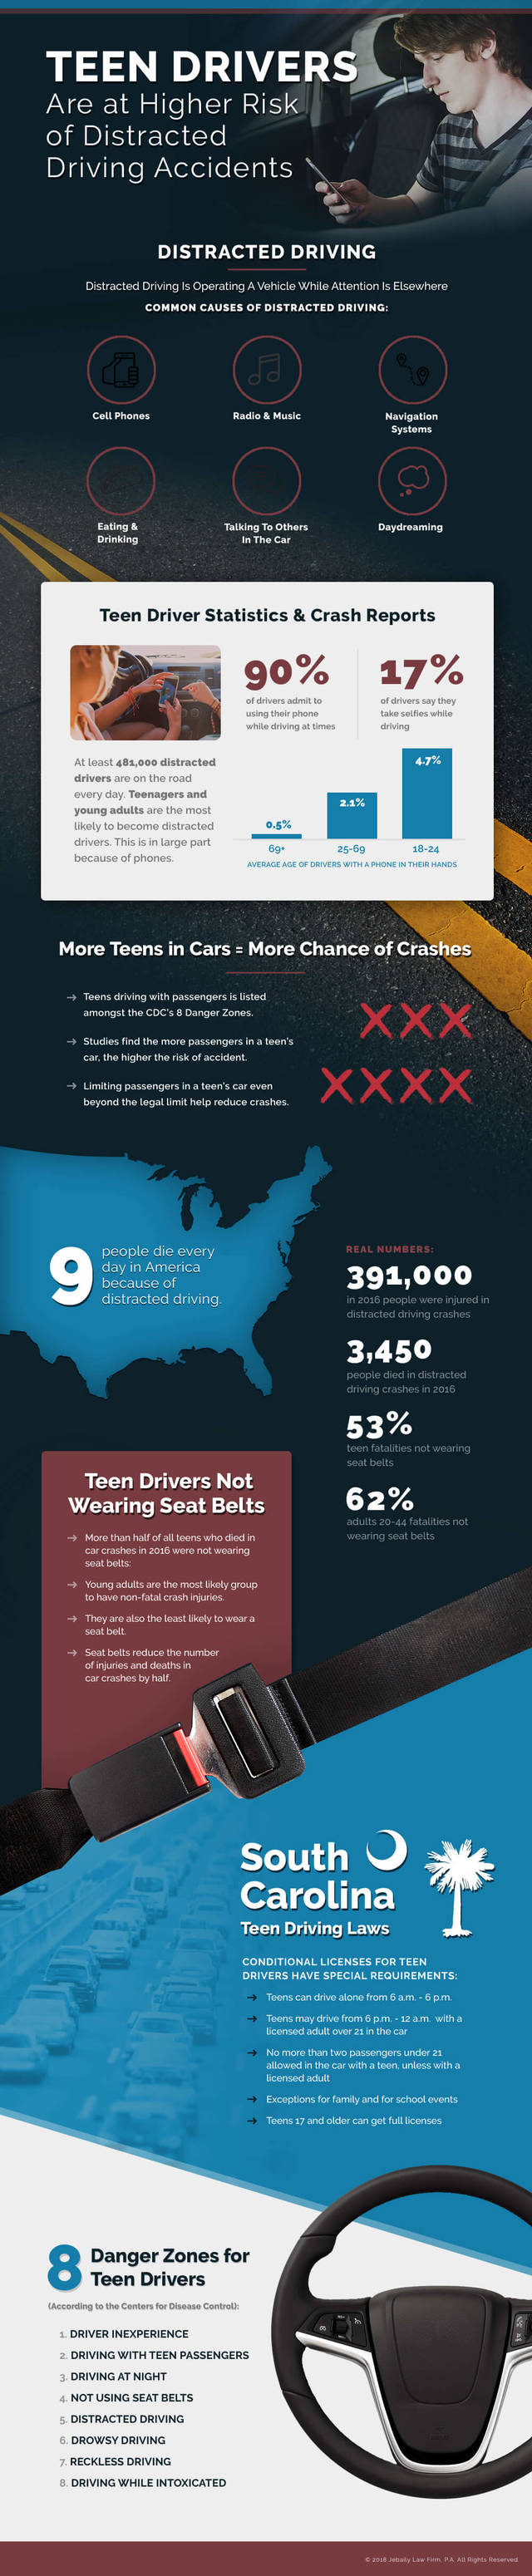 Jebaily teen driver infographic (1)